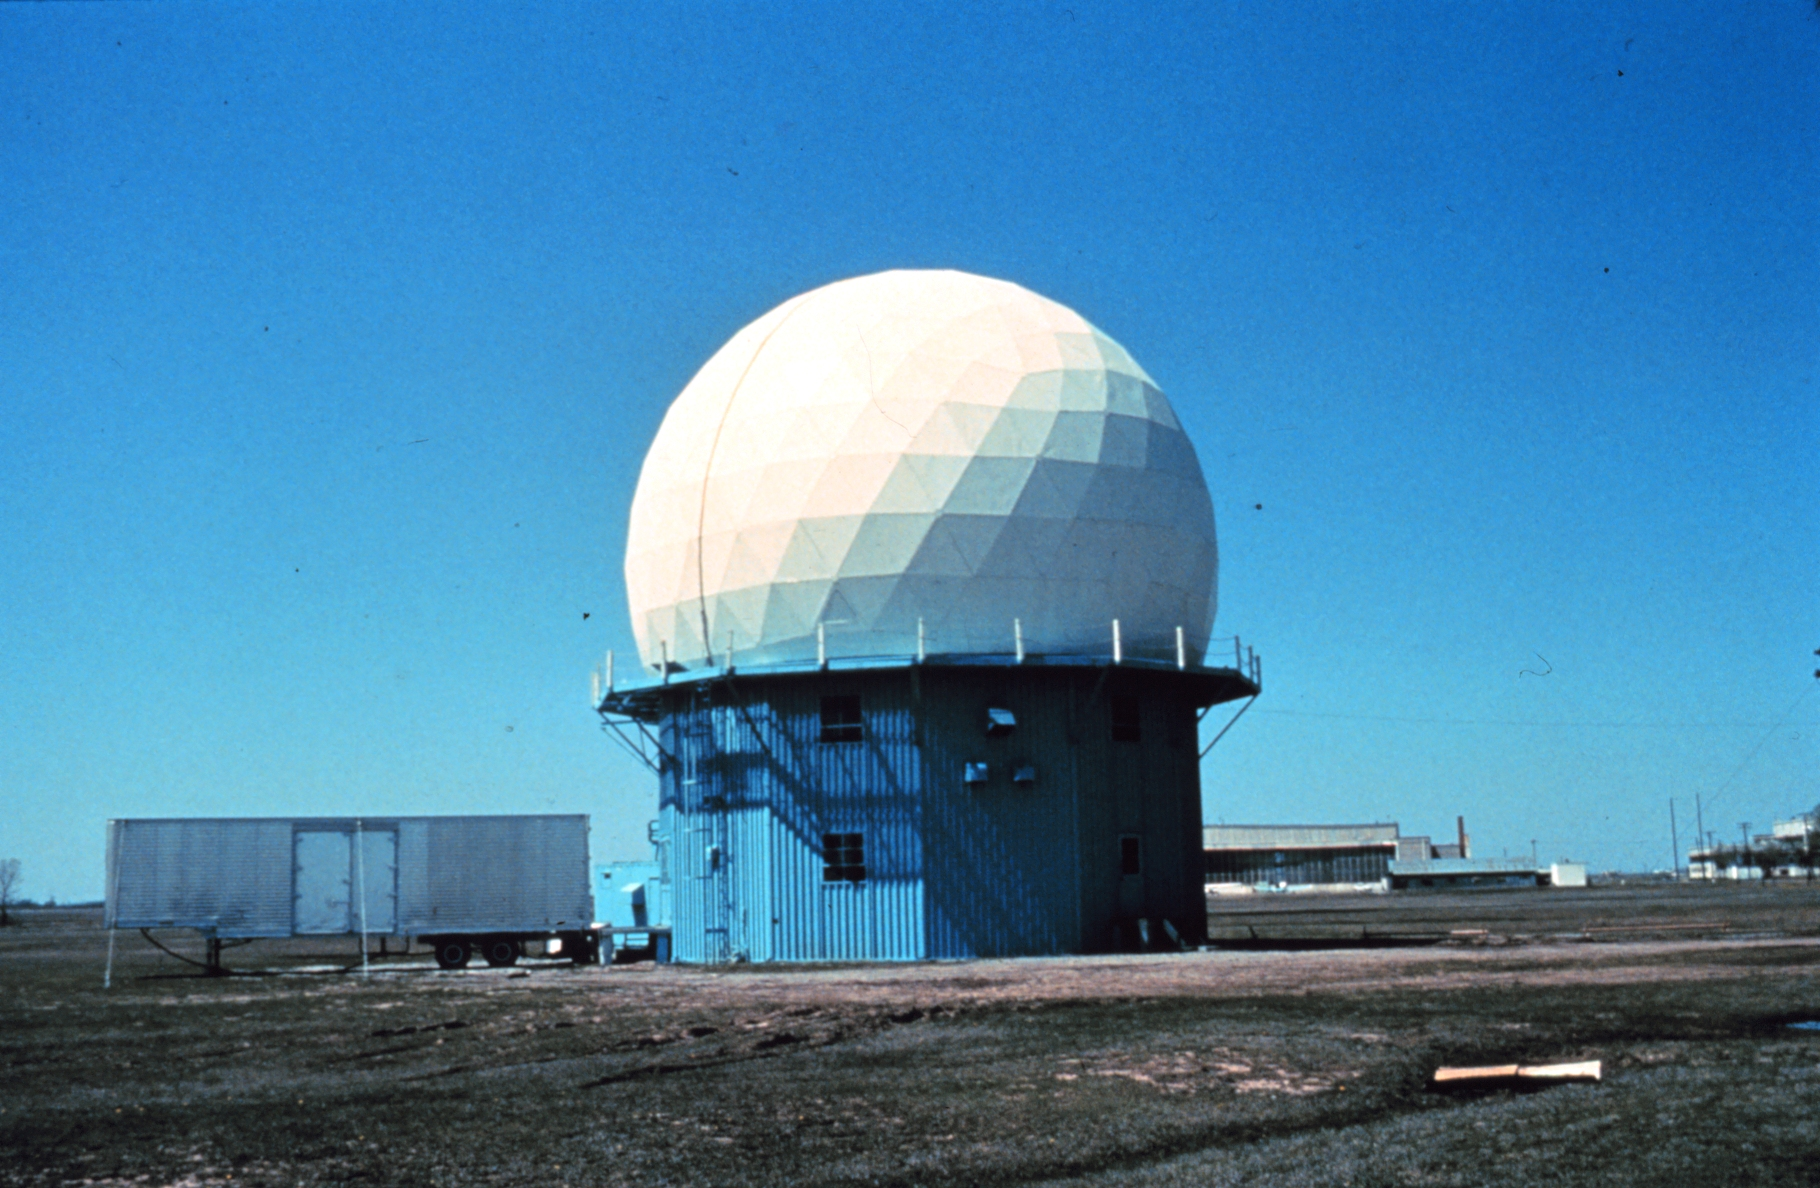 File:Doppler WEATHER RADAR - NOAA.jpg - Wikipedia, the free ...